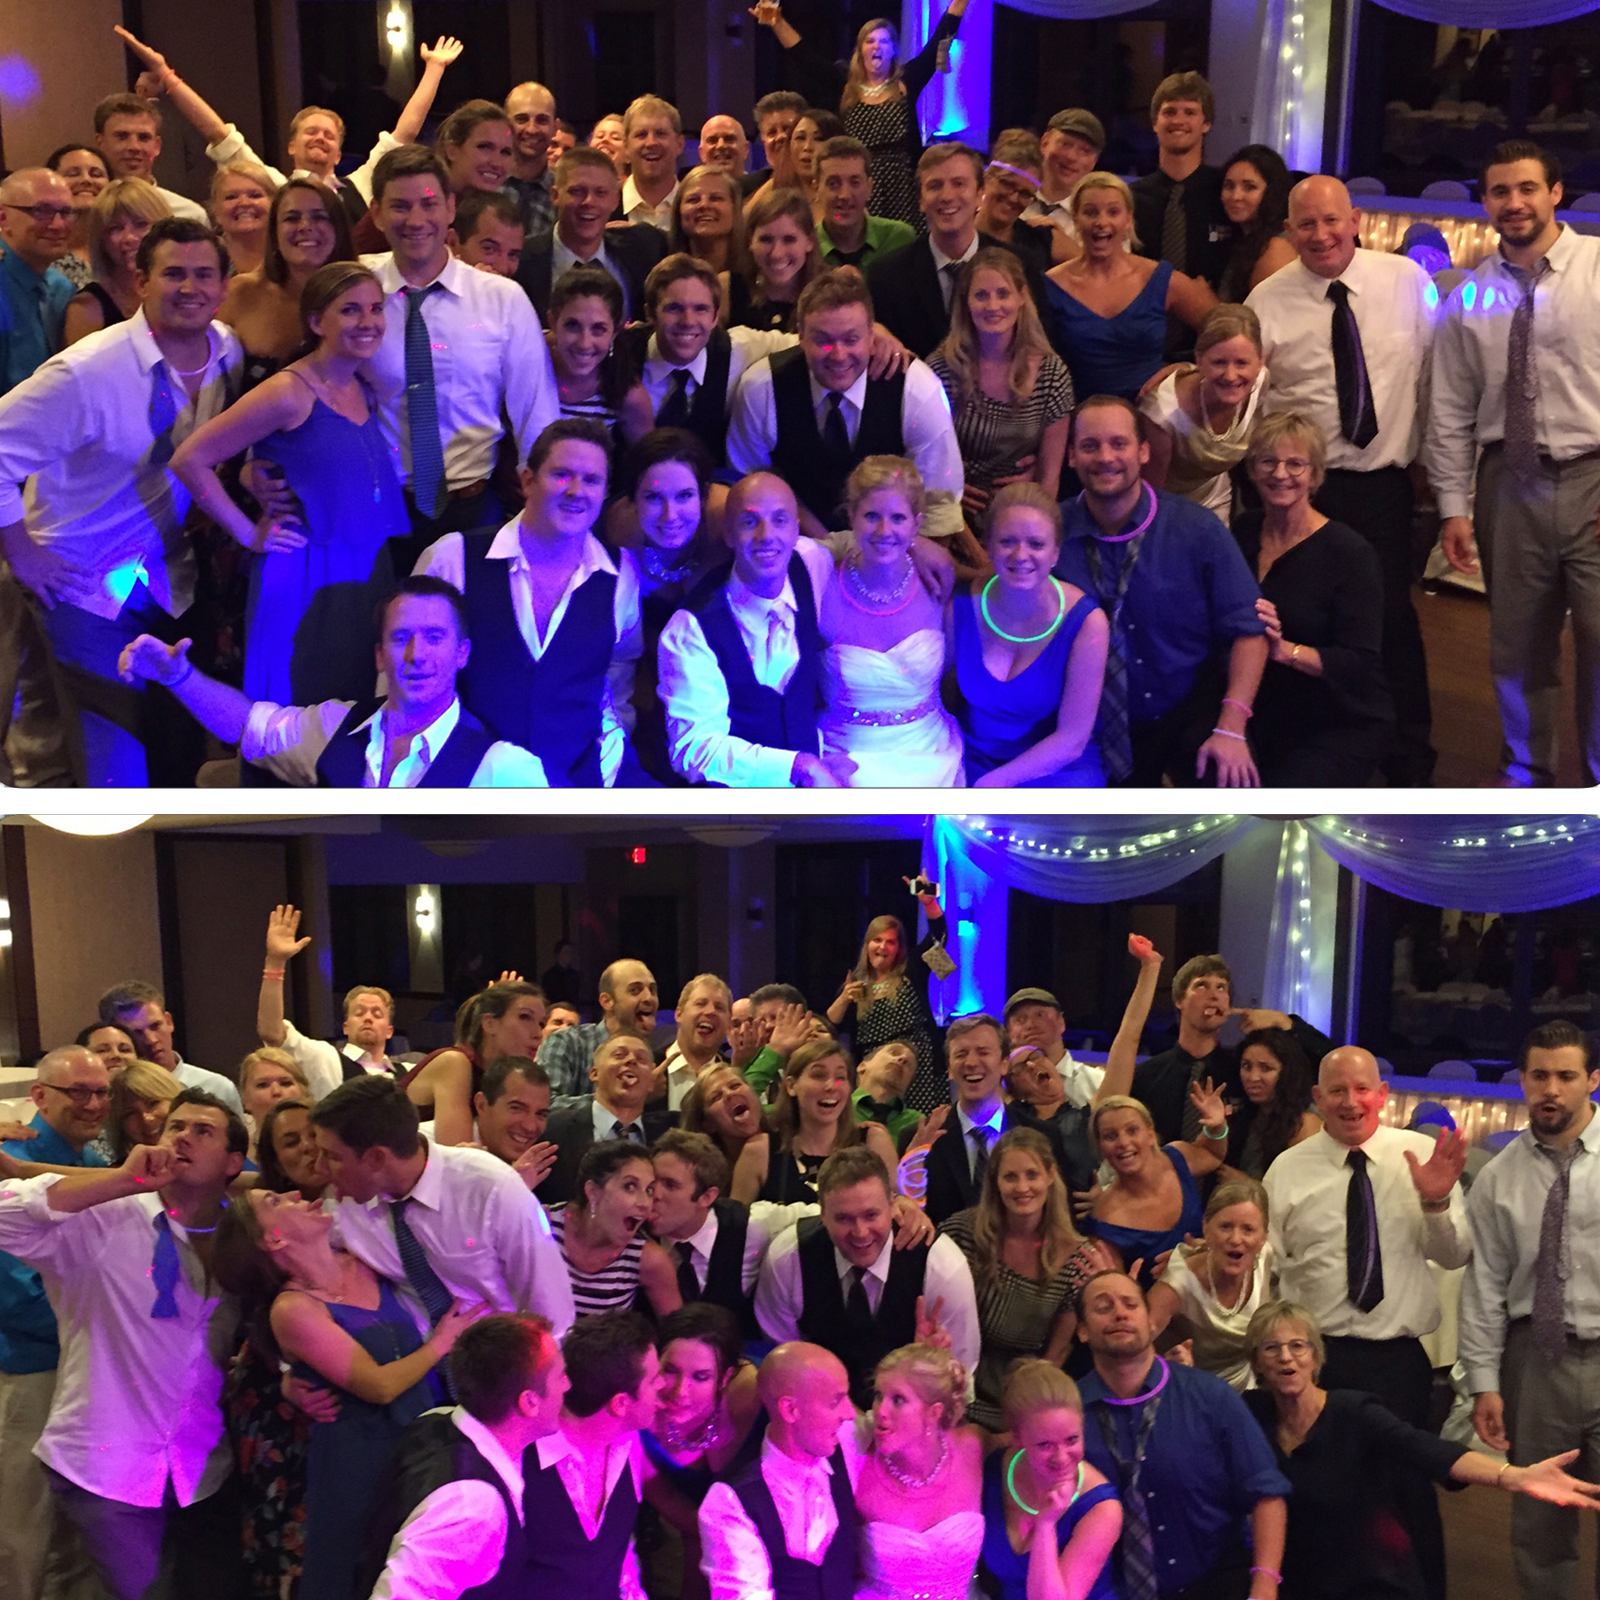 Wedding DJ at Olympic Hills Golf Club, Eden Prairie, Minnesota